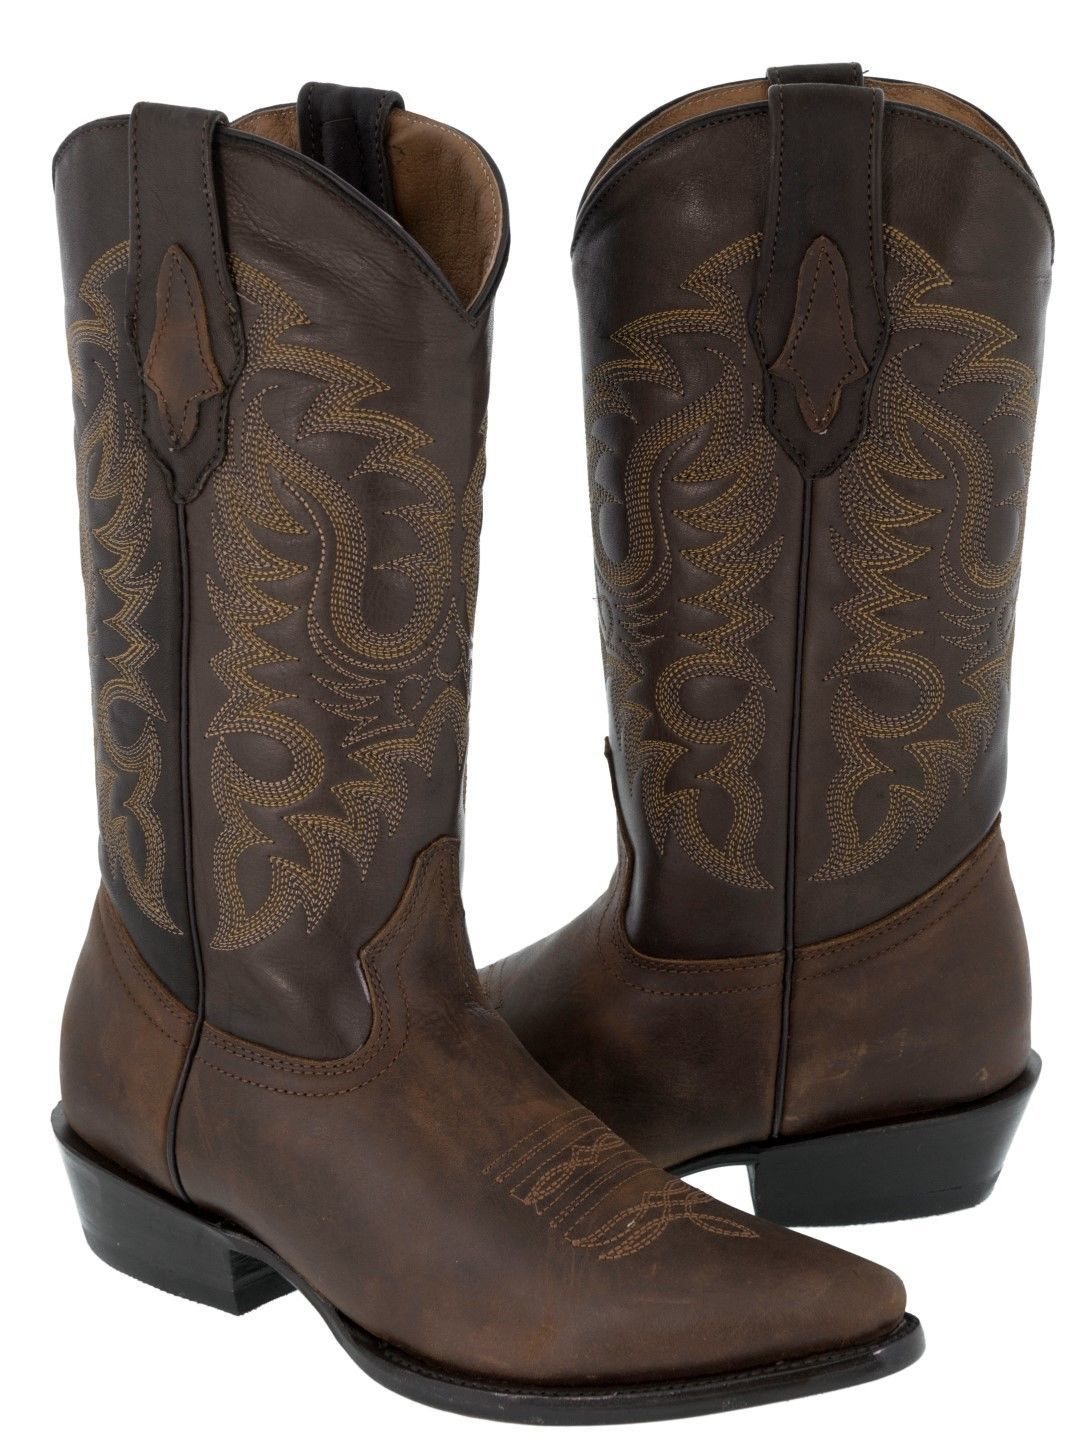 Mens Tan Leather Embroidered Design Boots Durable Vintage Western J - $139.99